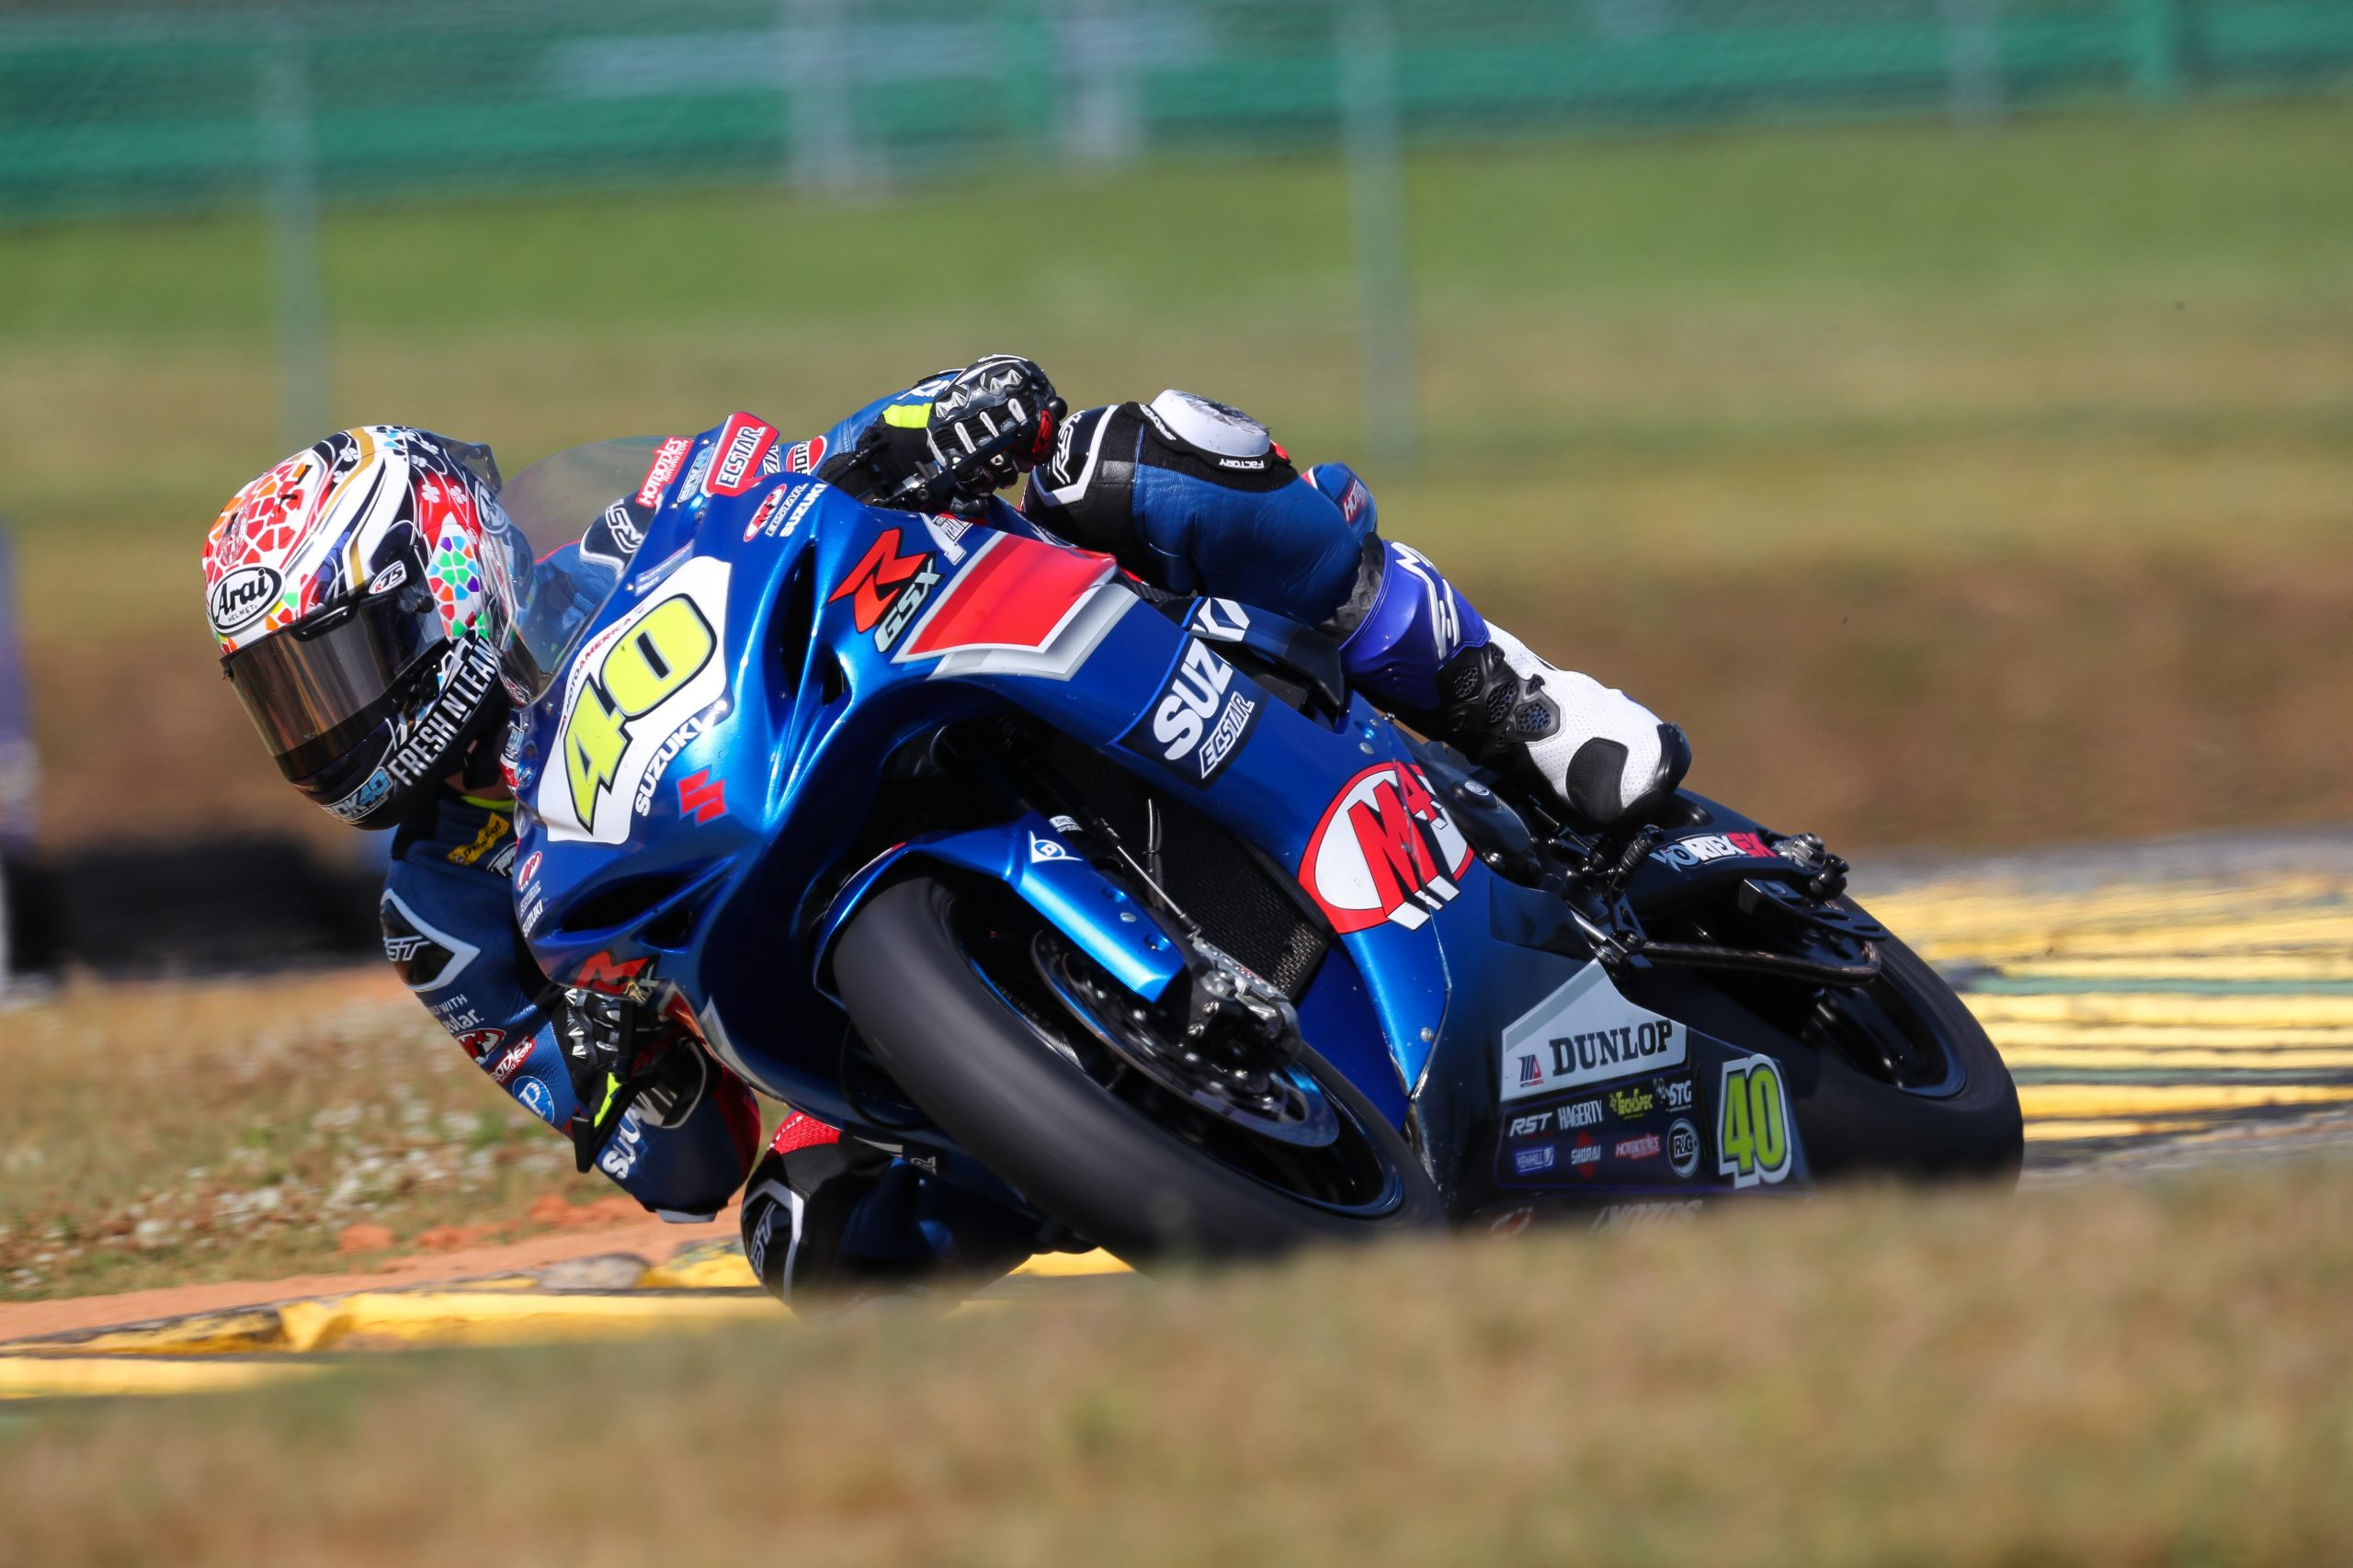 210524 Sean Dylan Kelly (40) took pole position and scored his fifth consecutive Supersport race win at VIR